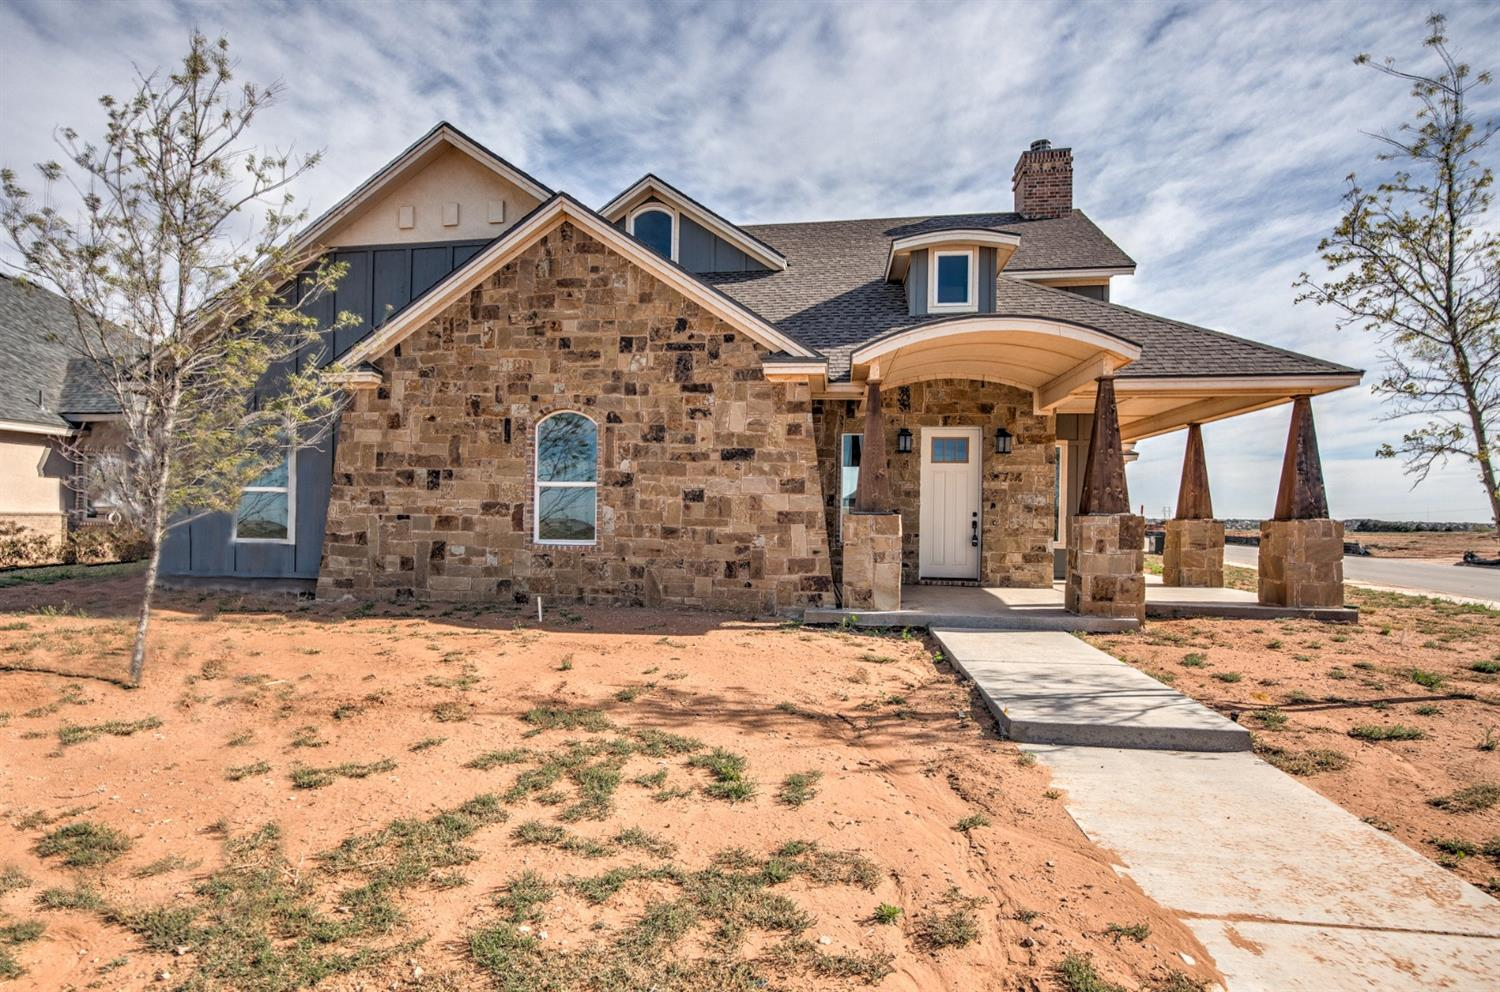 One of Lubbock 4 Bedroom Homes for Sale at 7026 103rd Street